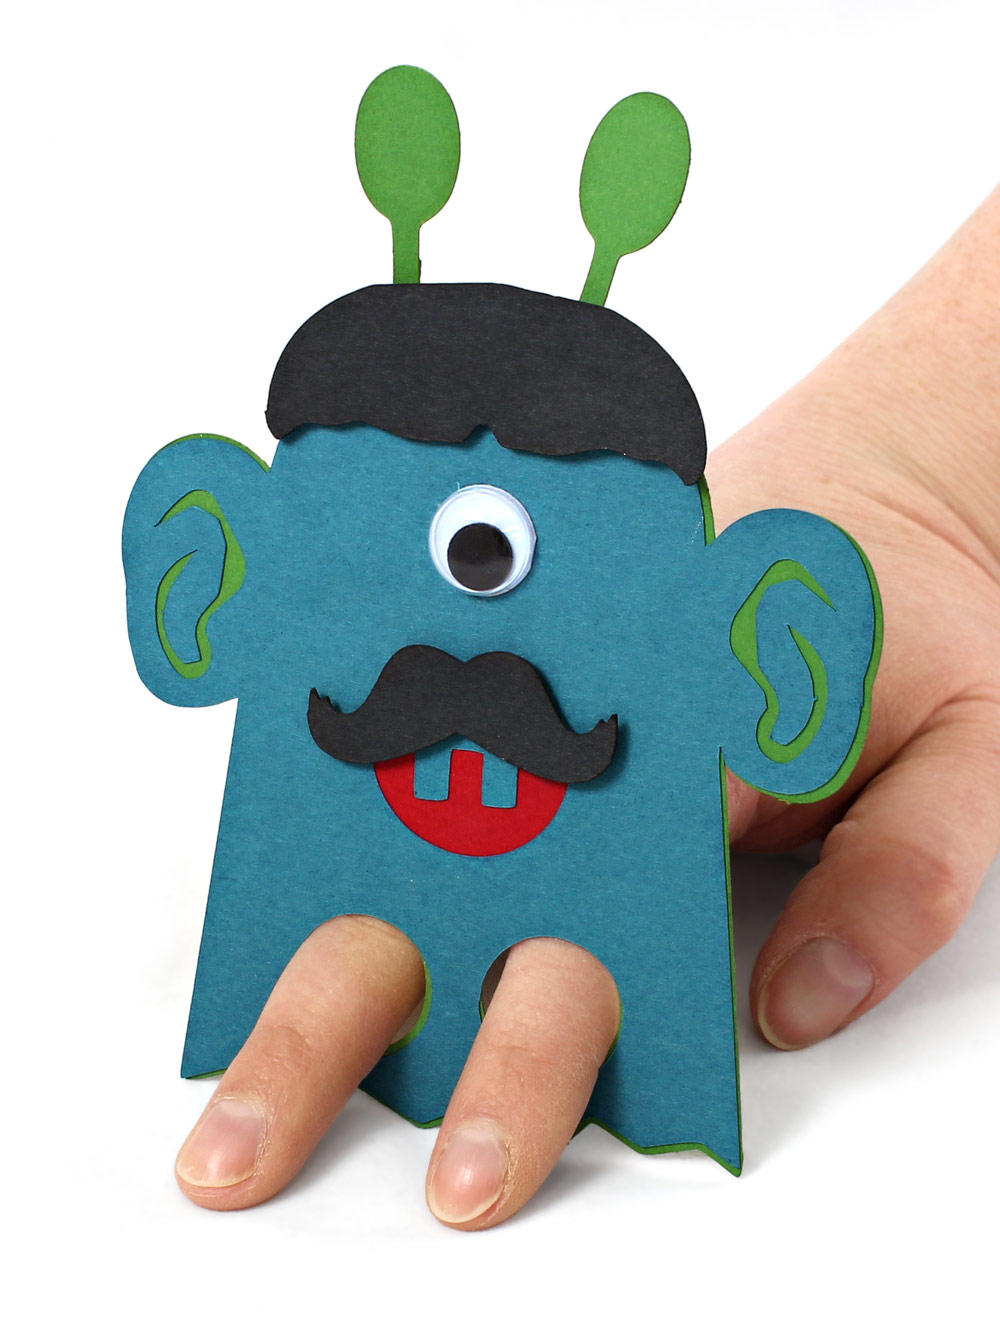 Diy classroom valentines part 2 monster finger puppets pazzles